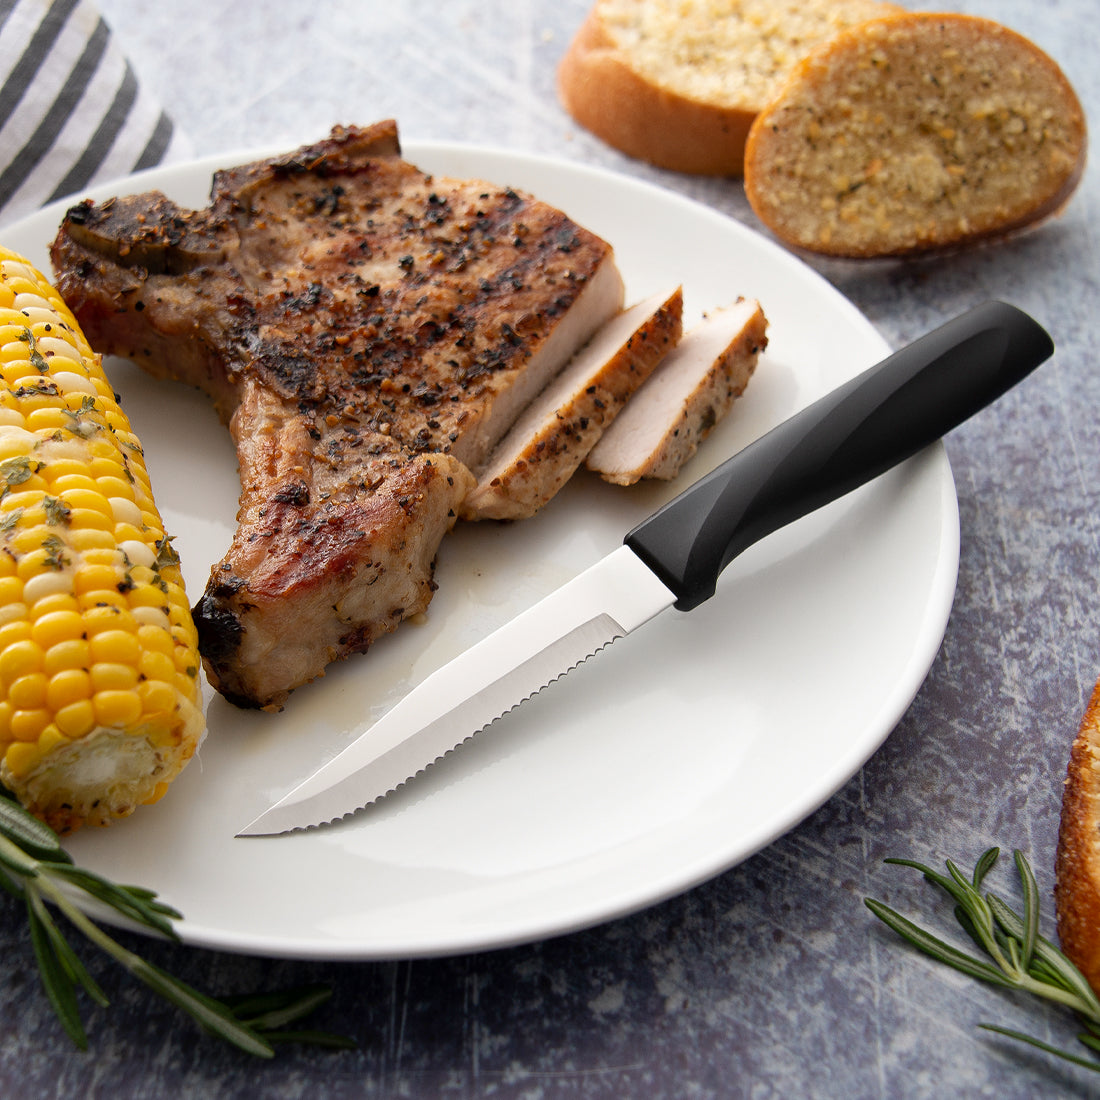 Rada Cutlery Anthem Wave Serrated Steak knife on white plate with sliced steak